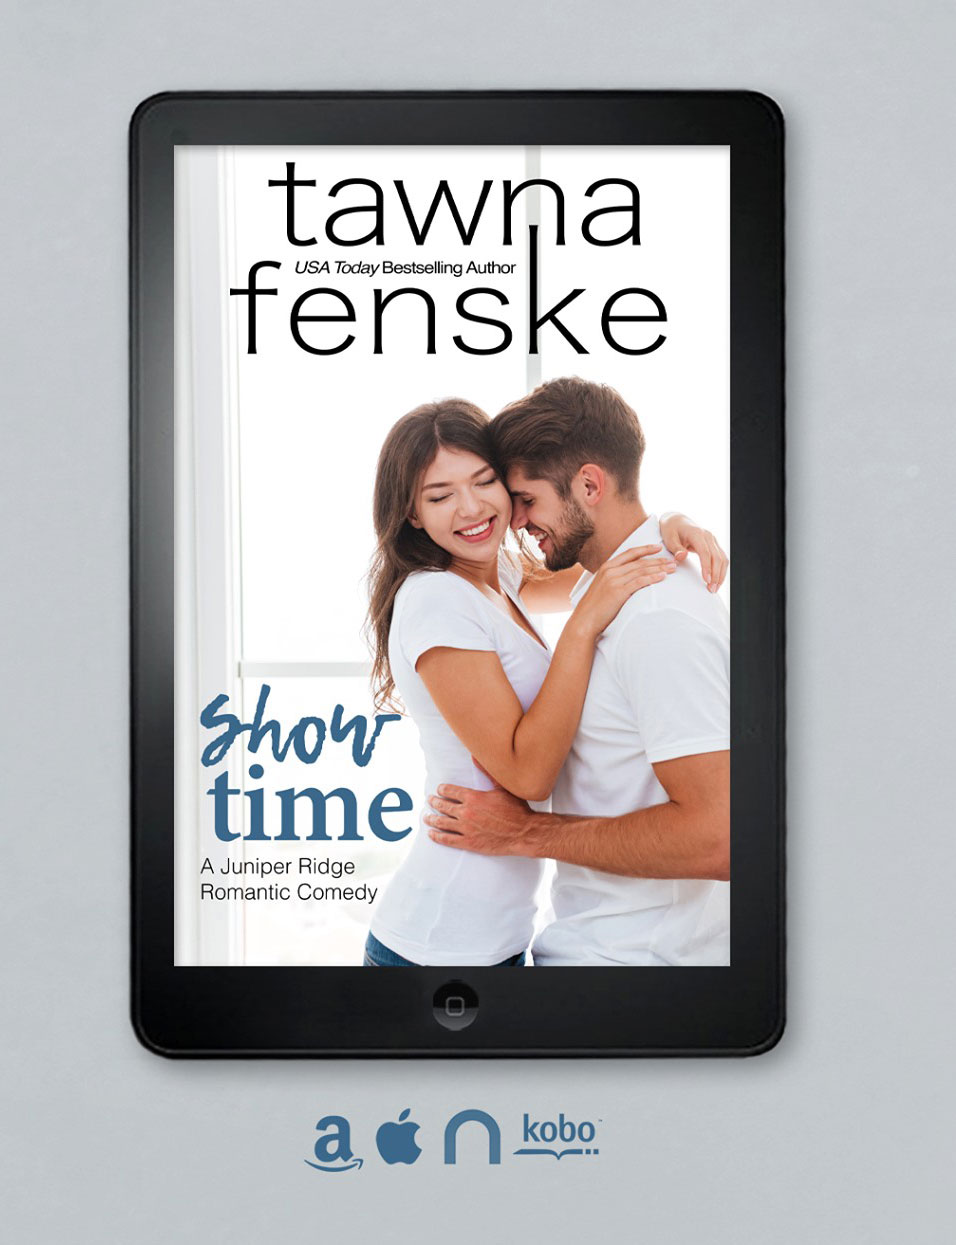 Show Time - New Book By Tawna Fenske Released on June 26, 2020